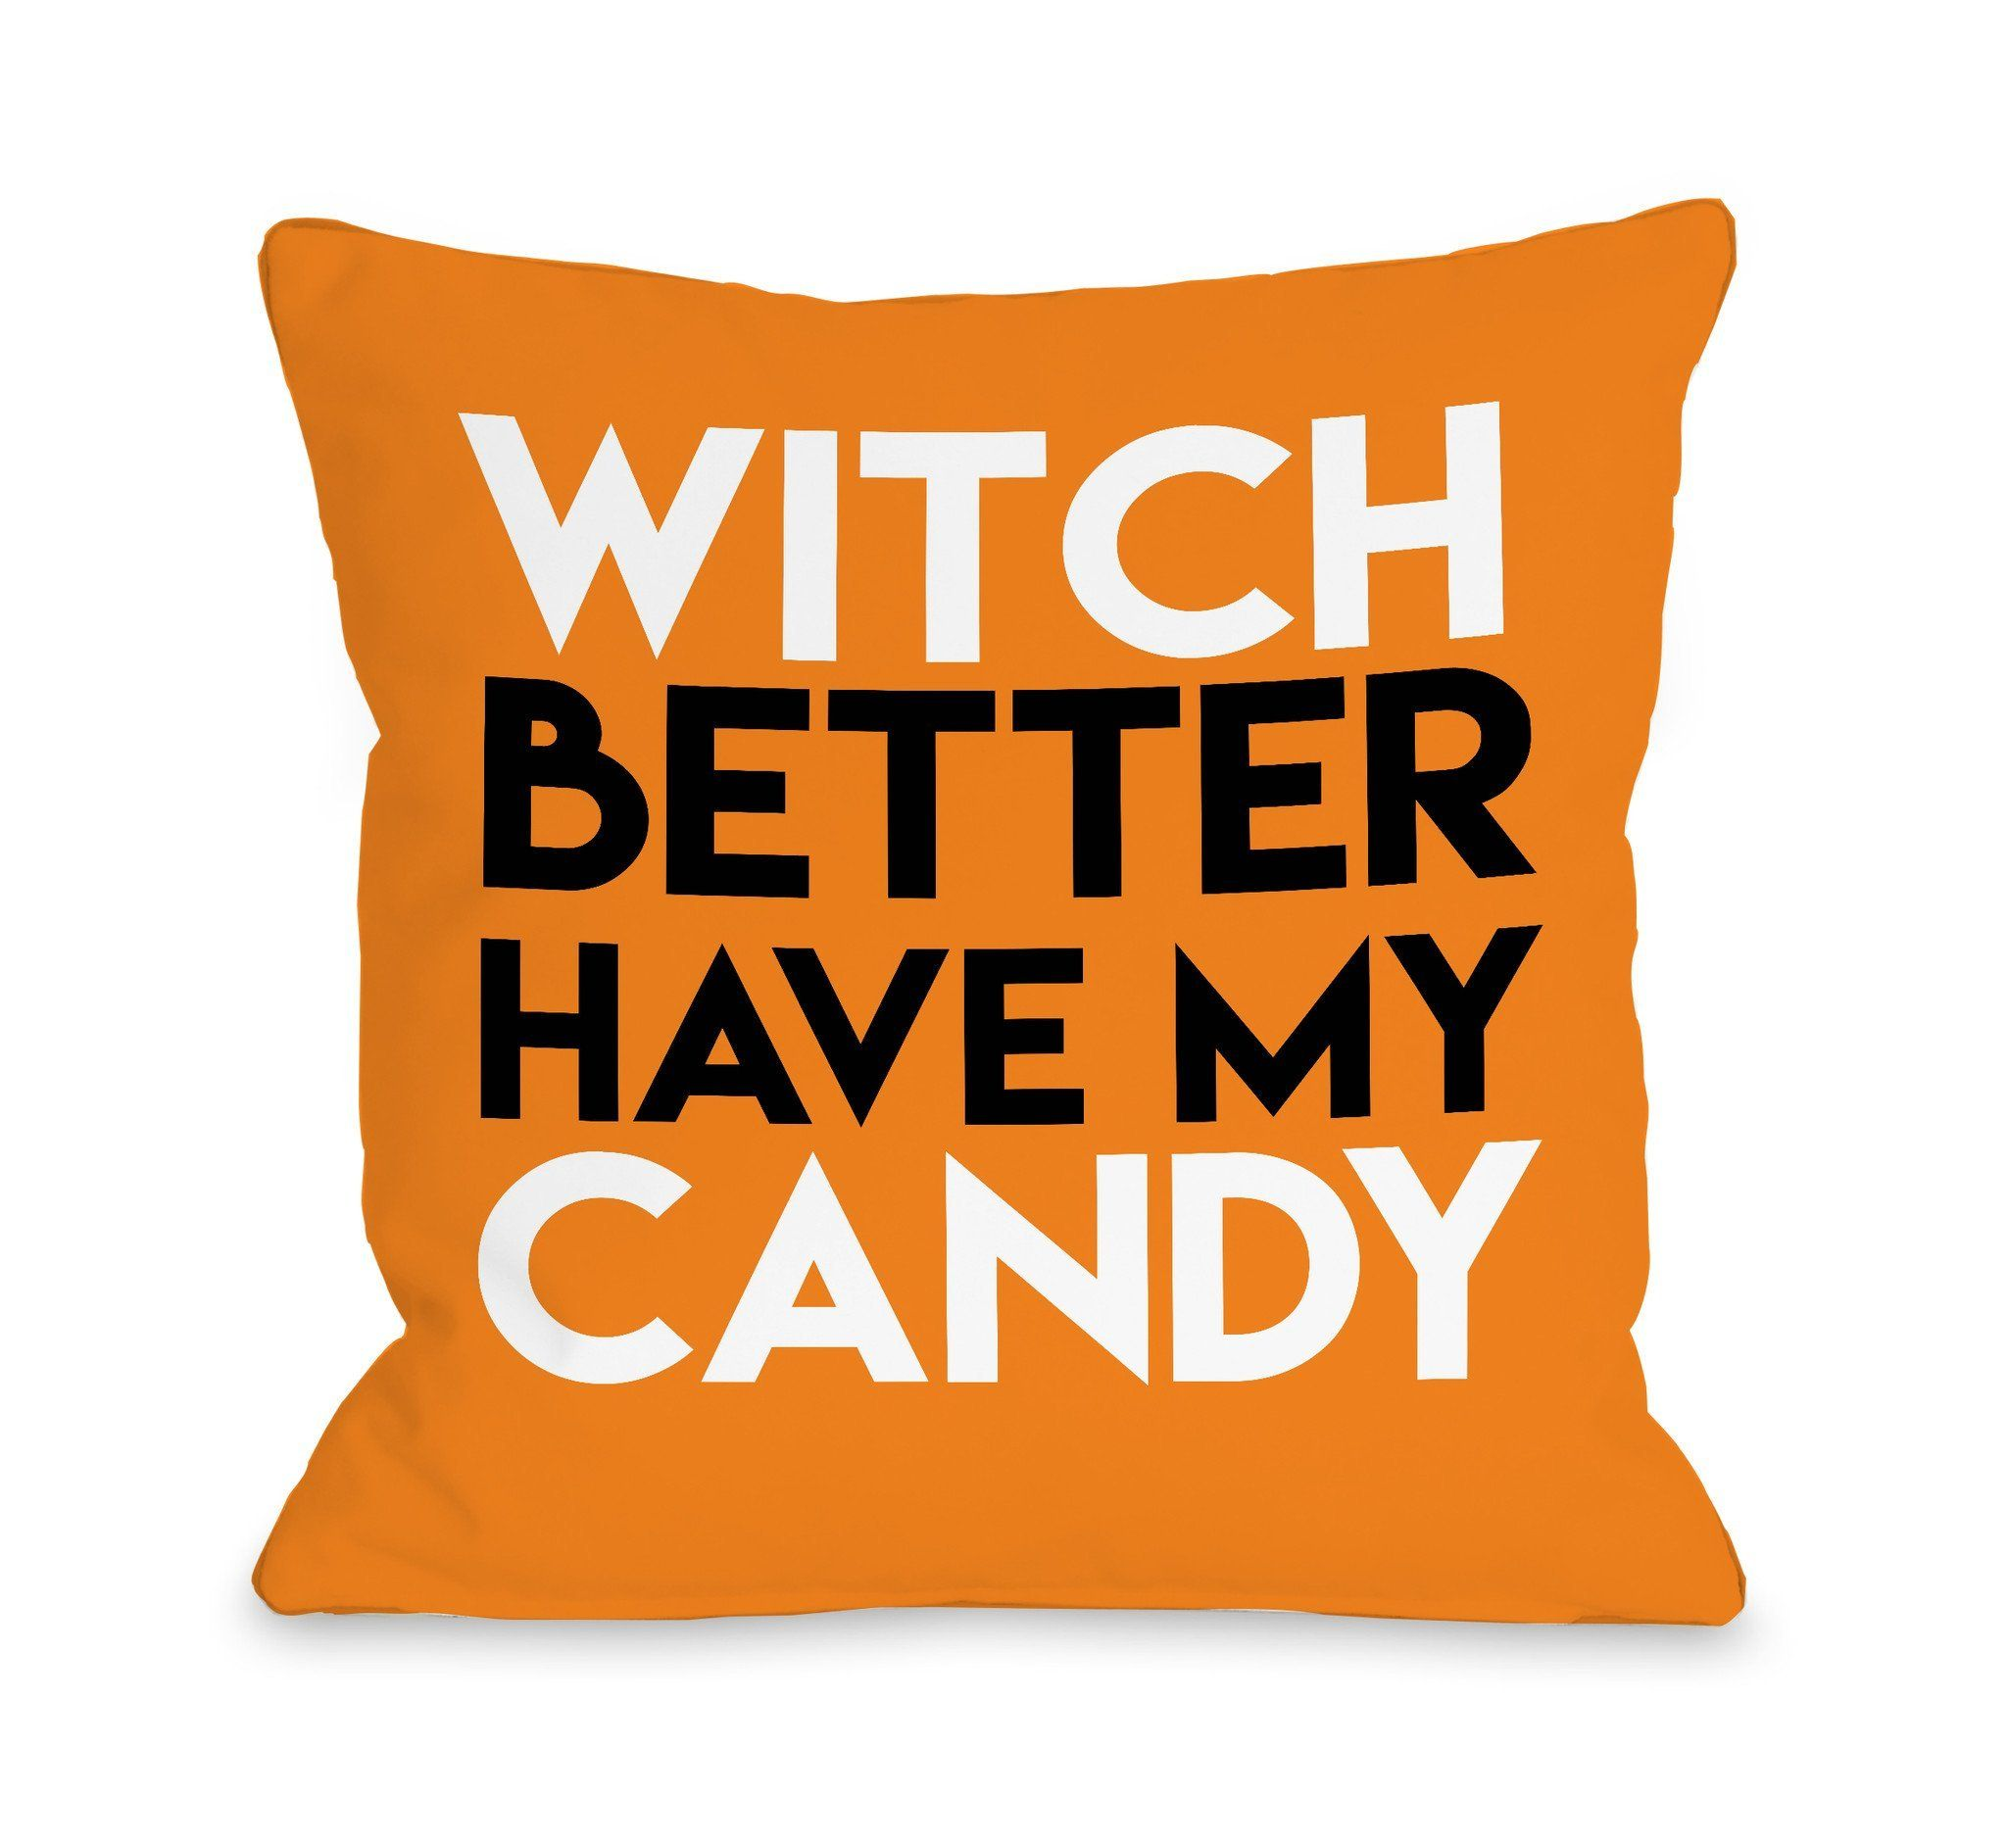 Witch Better Have My Candy Throw Pillow. Halloween FunHalloween Home DecorHolidays  ...